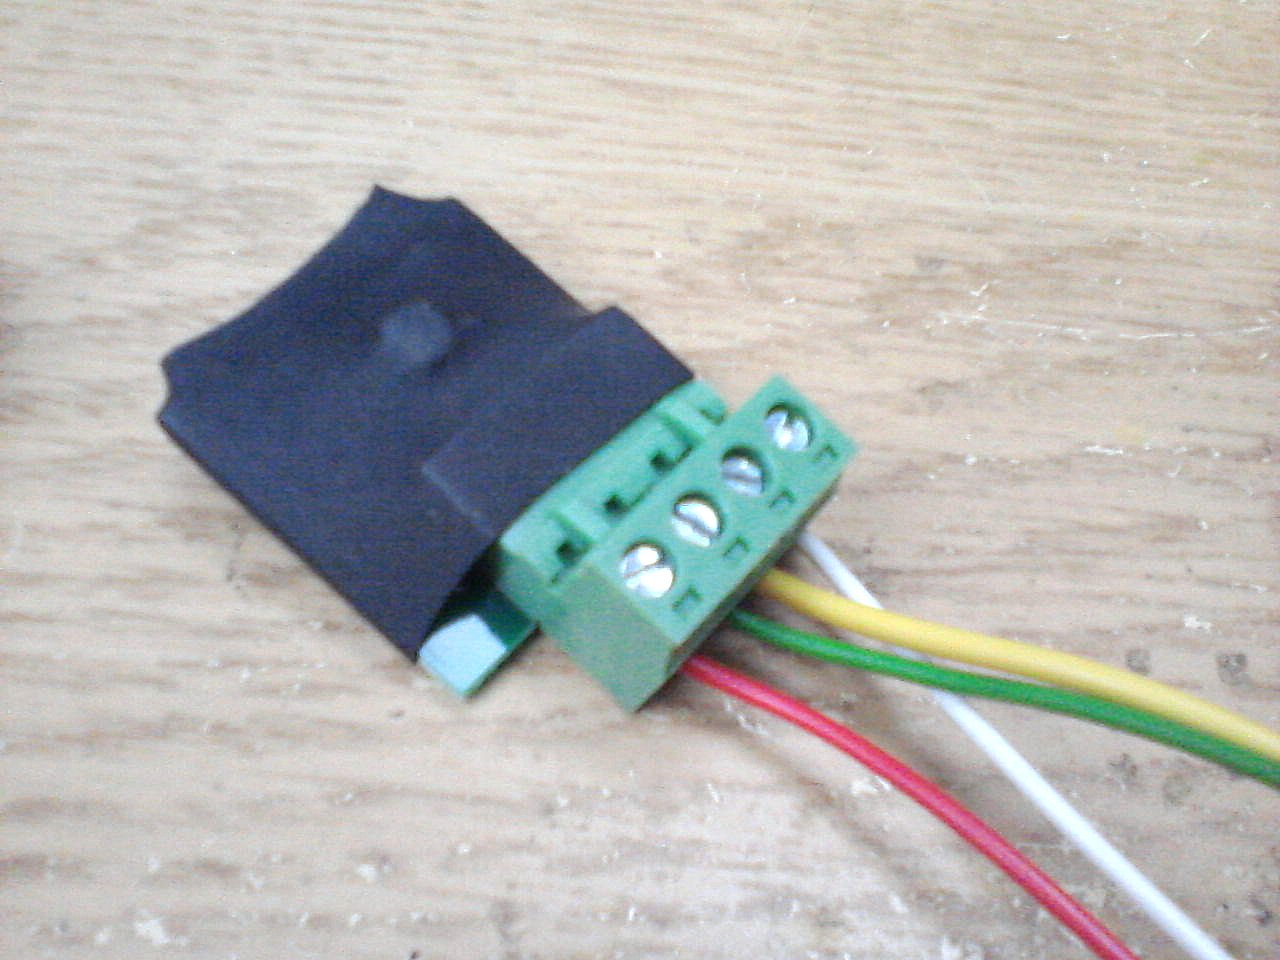 5 Volt to 12 Volt Pulse Converter